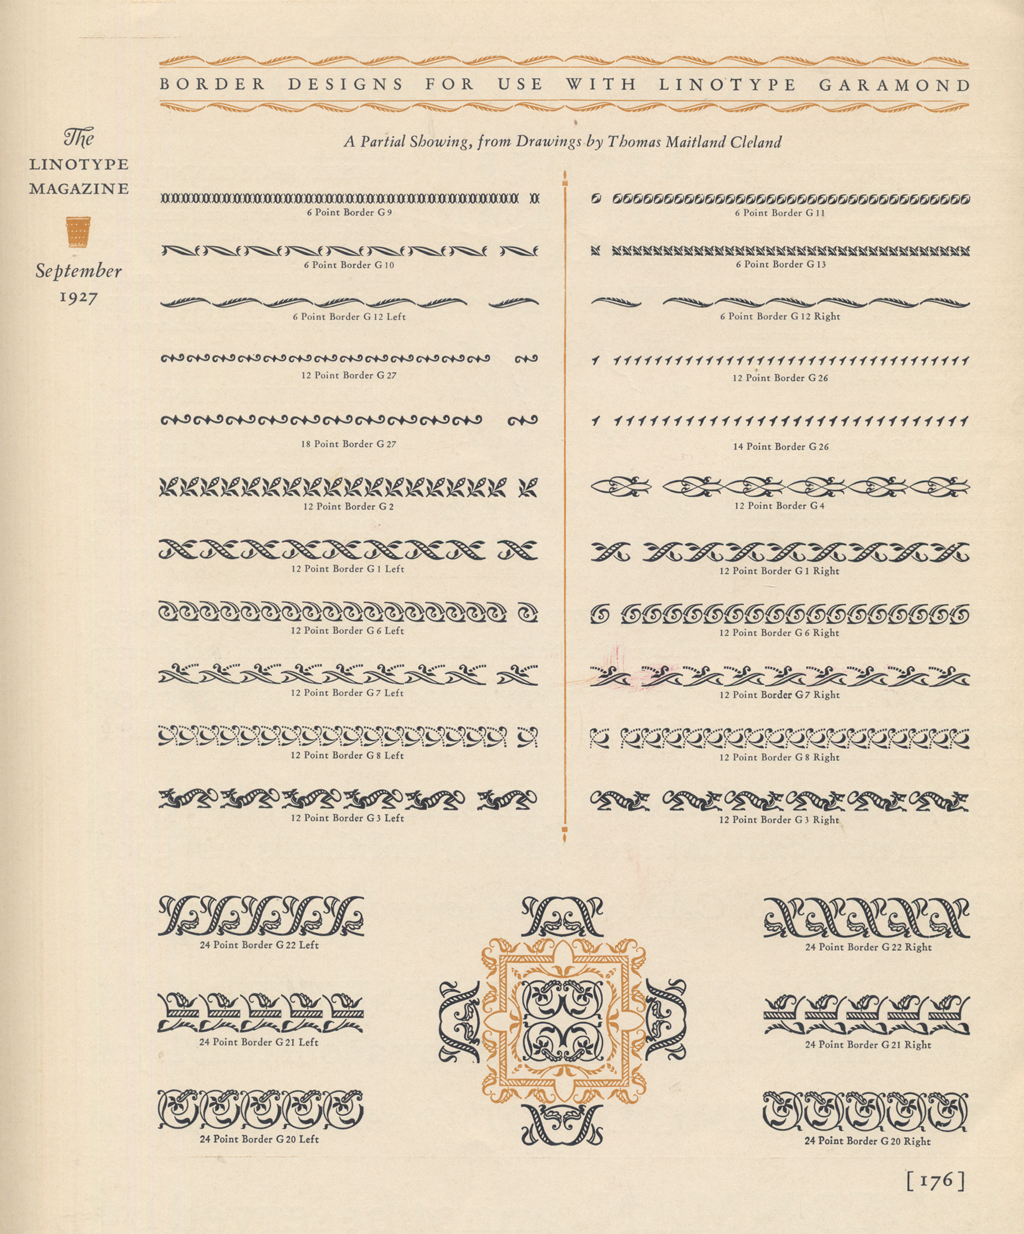 Linotype Garamond Borders by T.M. Cleland (cropped). From The Linotype Magazine (September 1927).